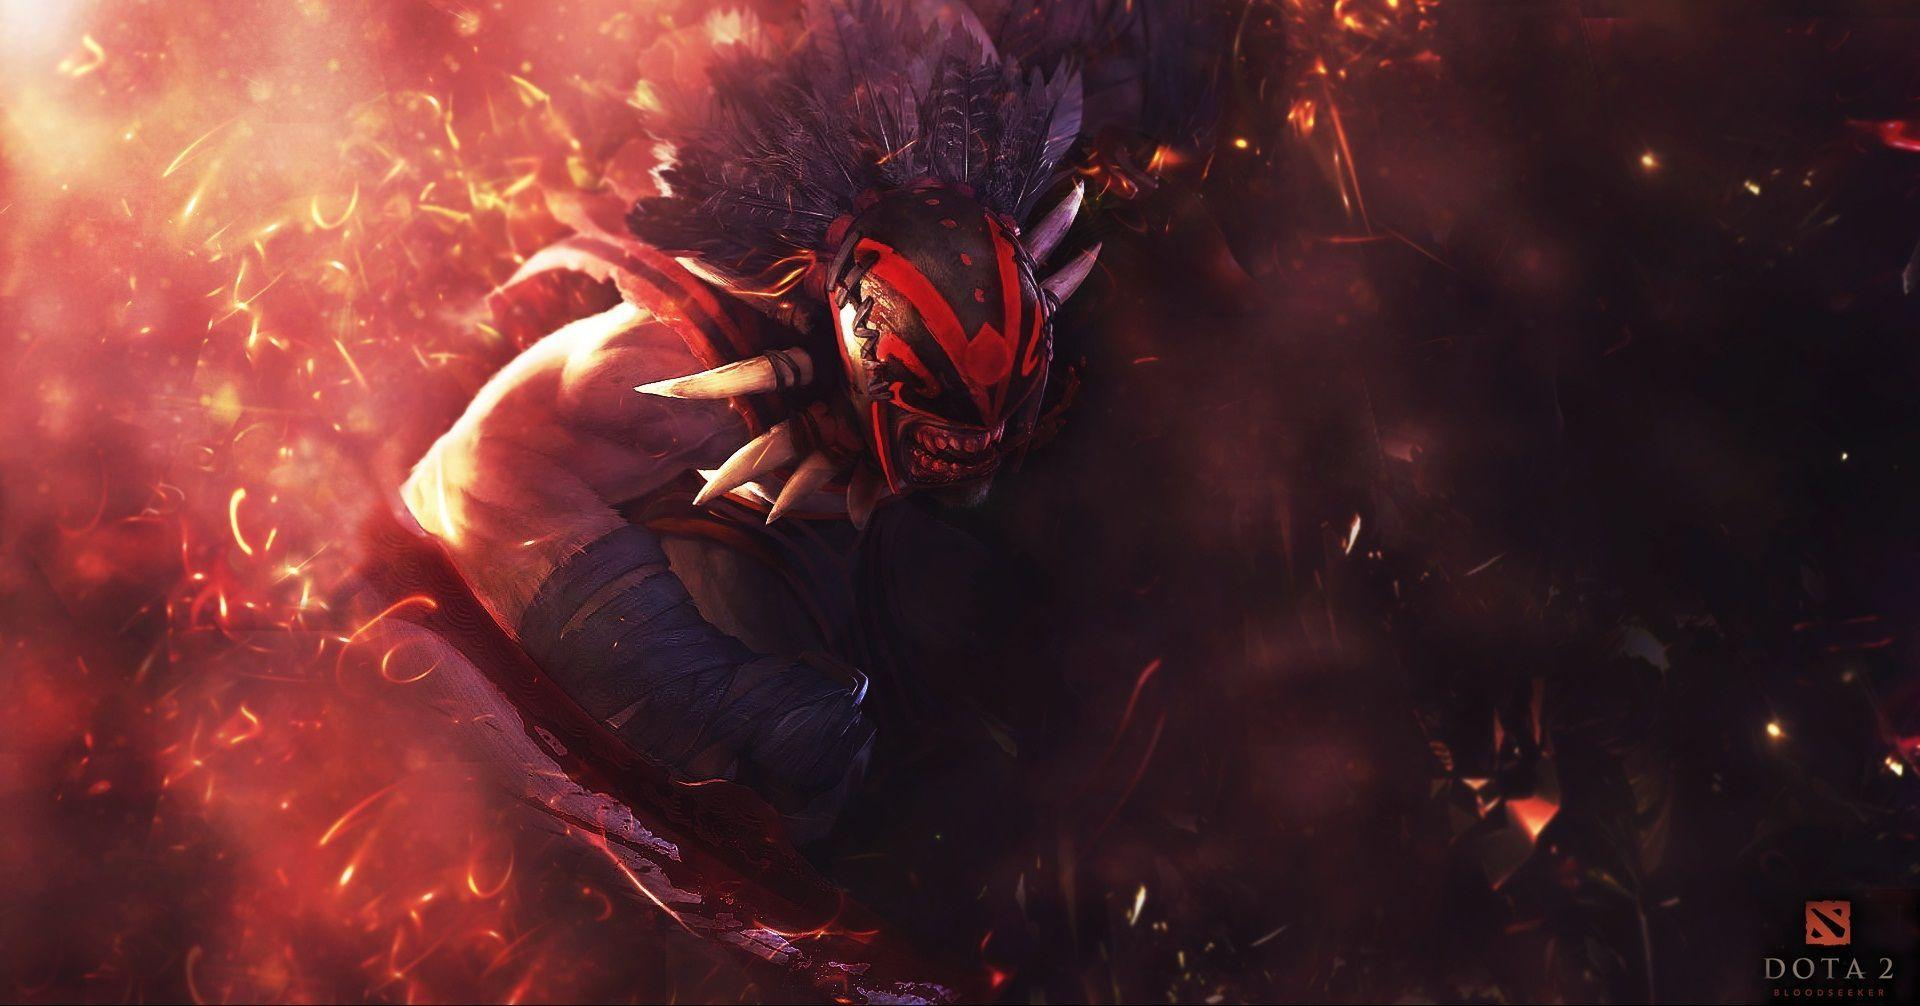 download dota 2 for android free